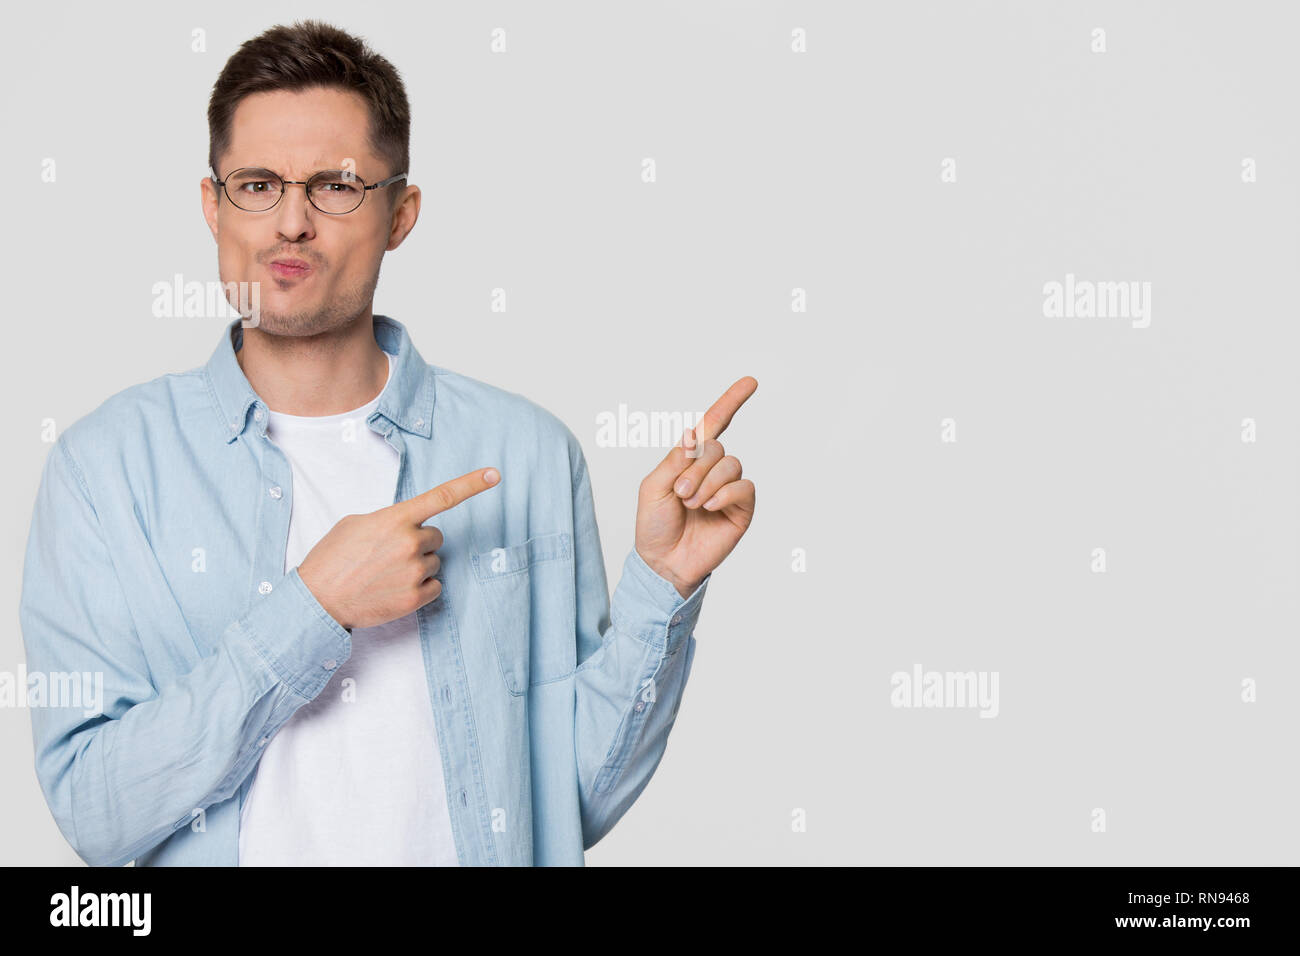 Confused bewildered man pointing fingers at copyspace feeling distrustful - Stock Image